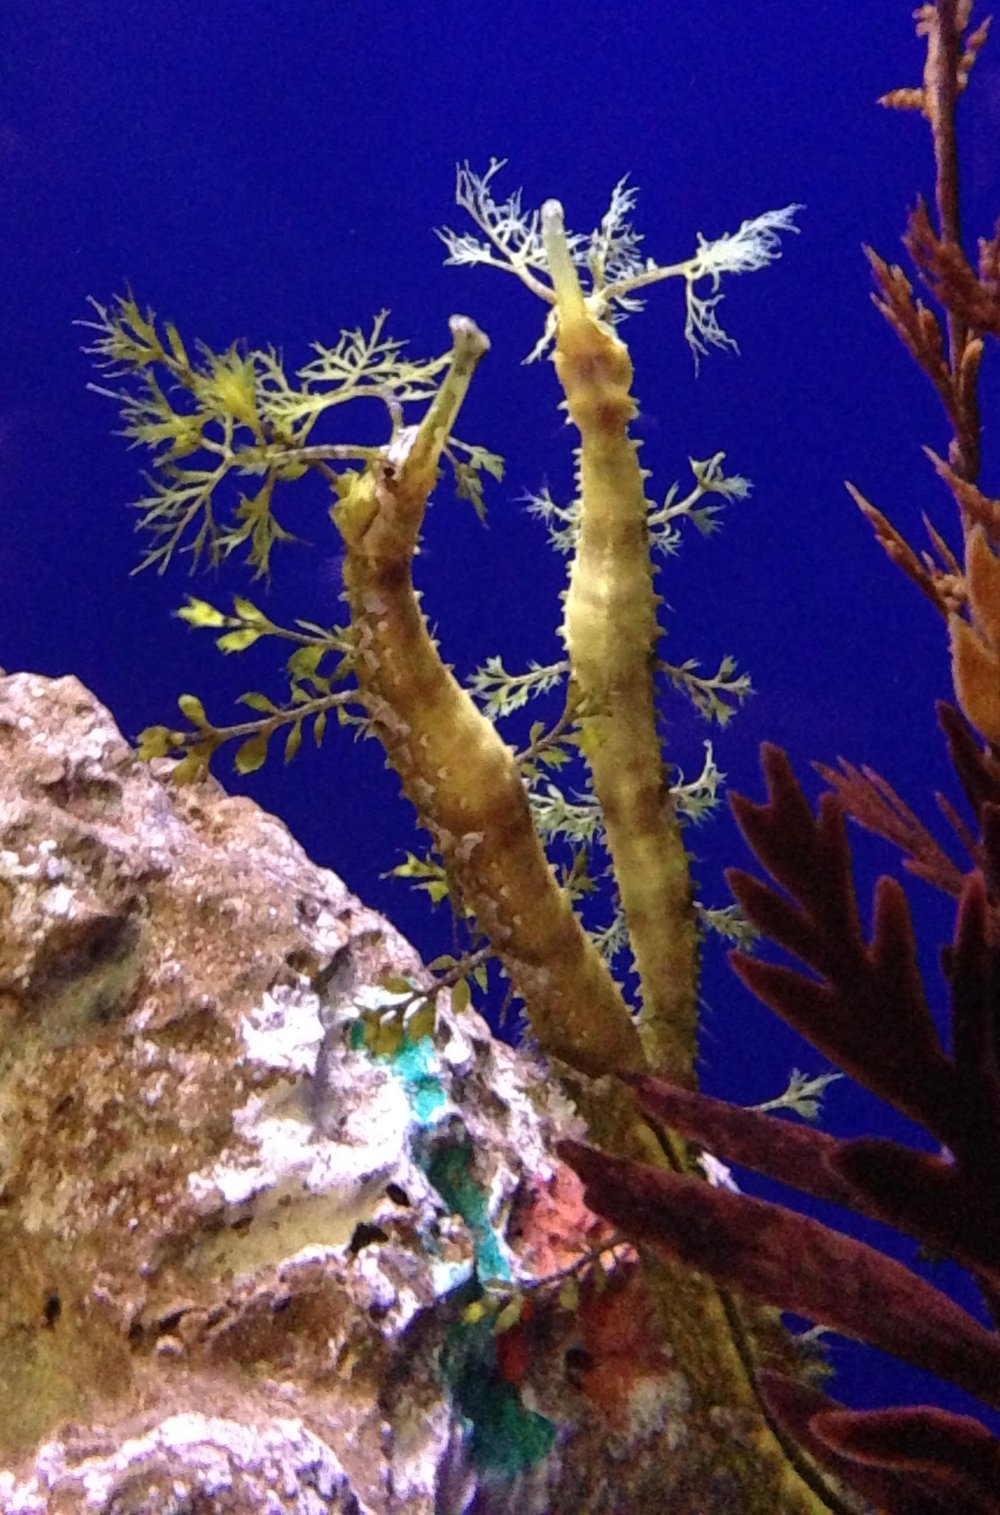 Ribboned pipefish, Haliichthys taeniophorus, at The Florida Aquarium